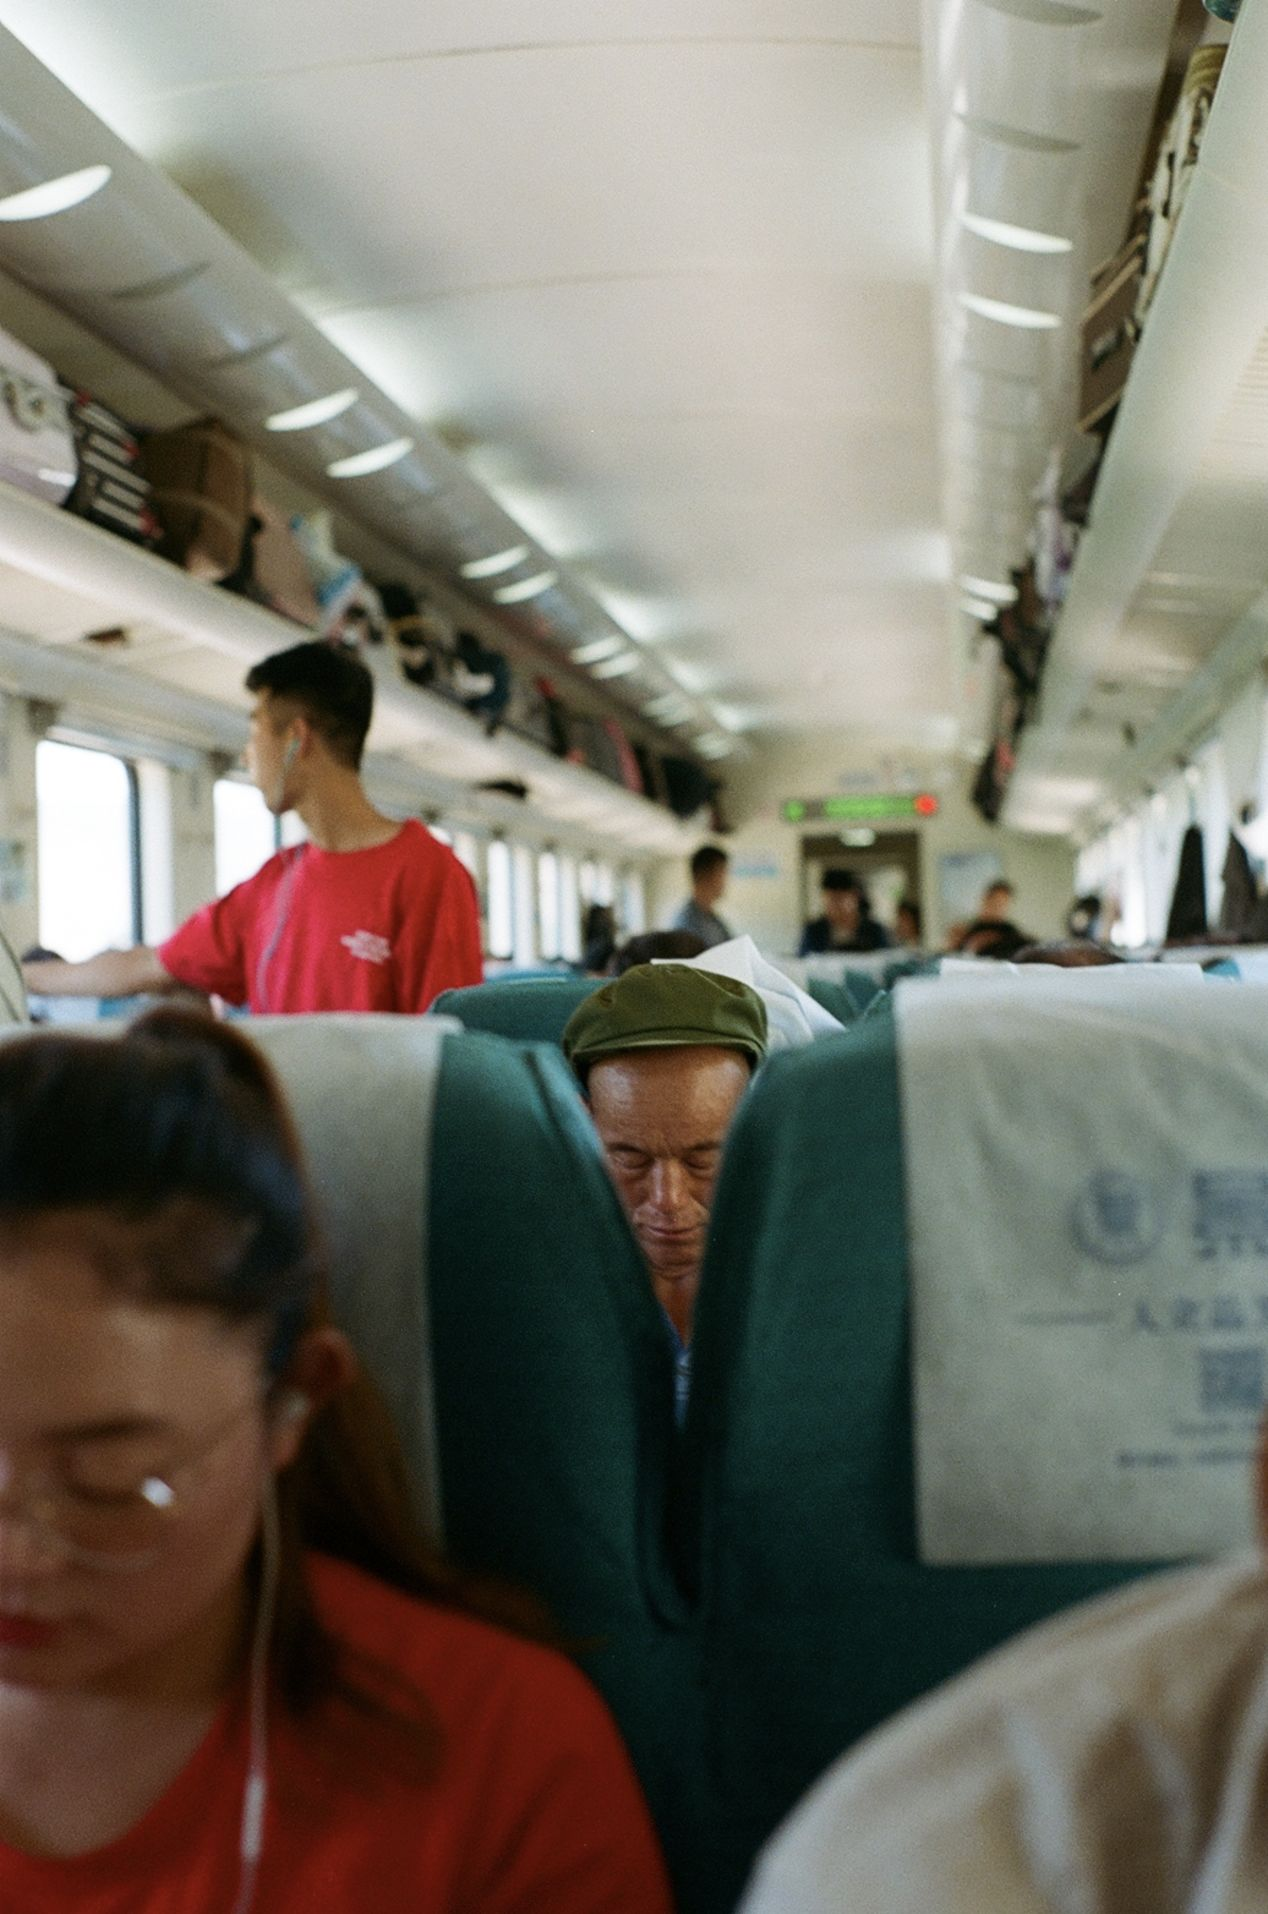 A scene from an eight-hour bus ride throughout China. At least I was able to snag a ticket for a seat, so I didn't have to stand the whole way.